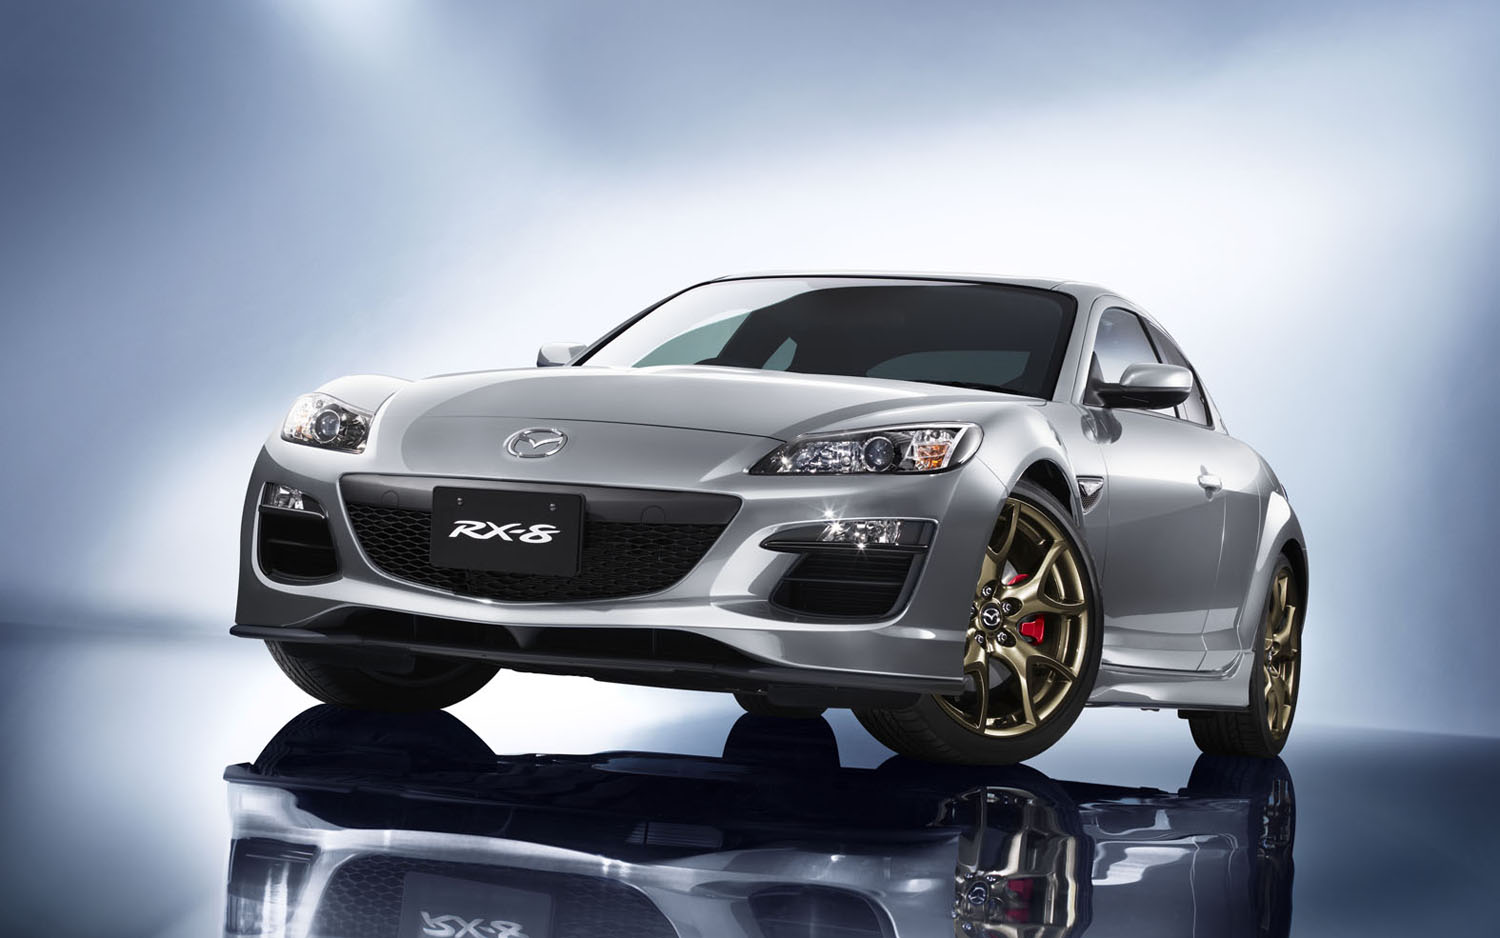 More Please: Mazda RX 8 Spirit R Run Extended By 1000 Units In Japan